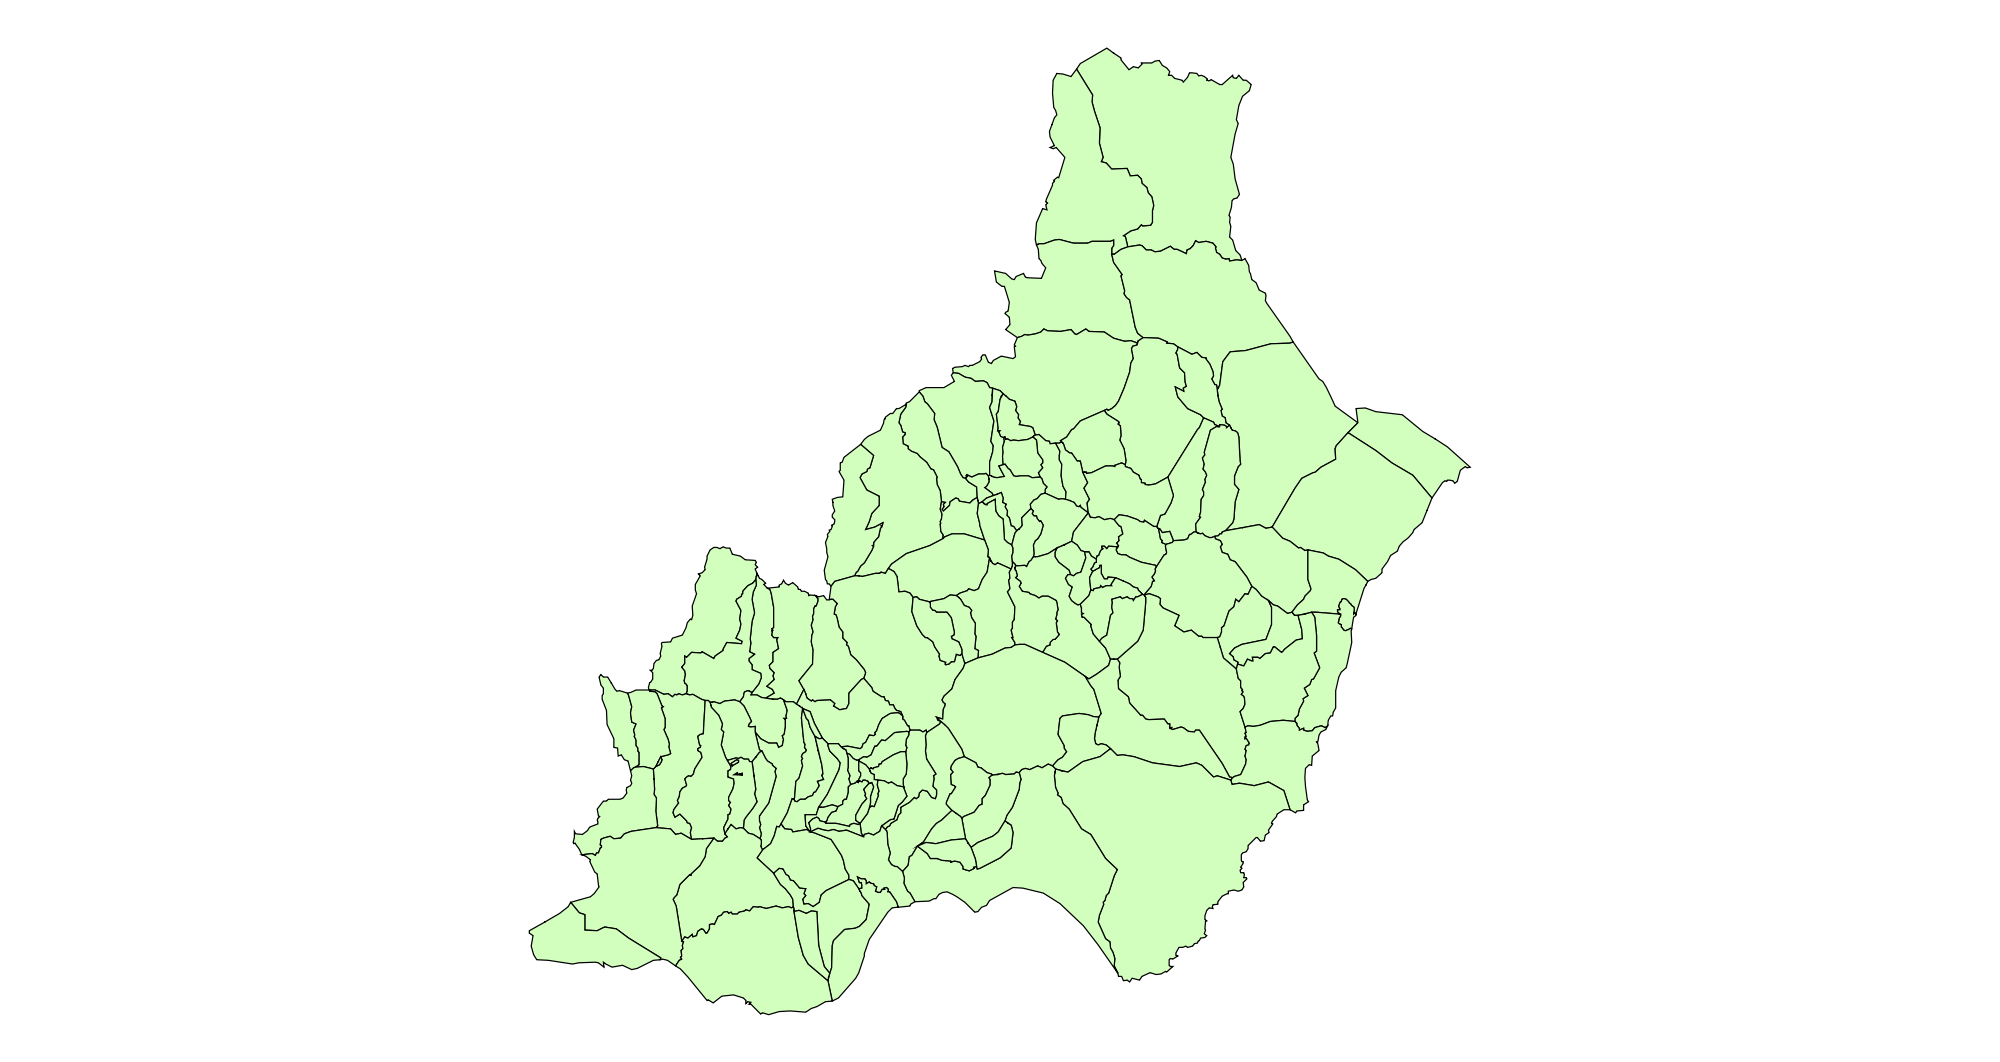 Municipalities of the Province of Almería 2003